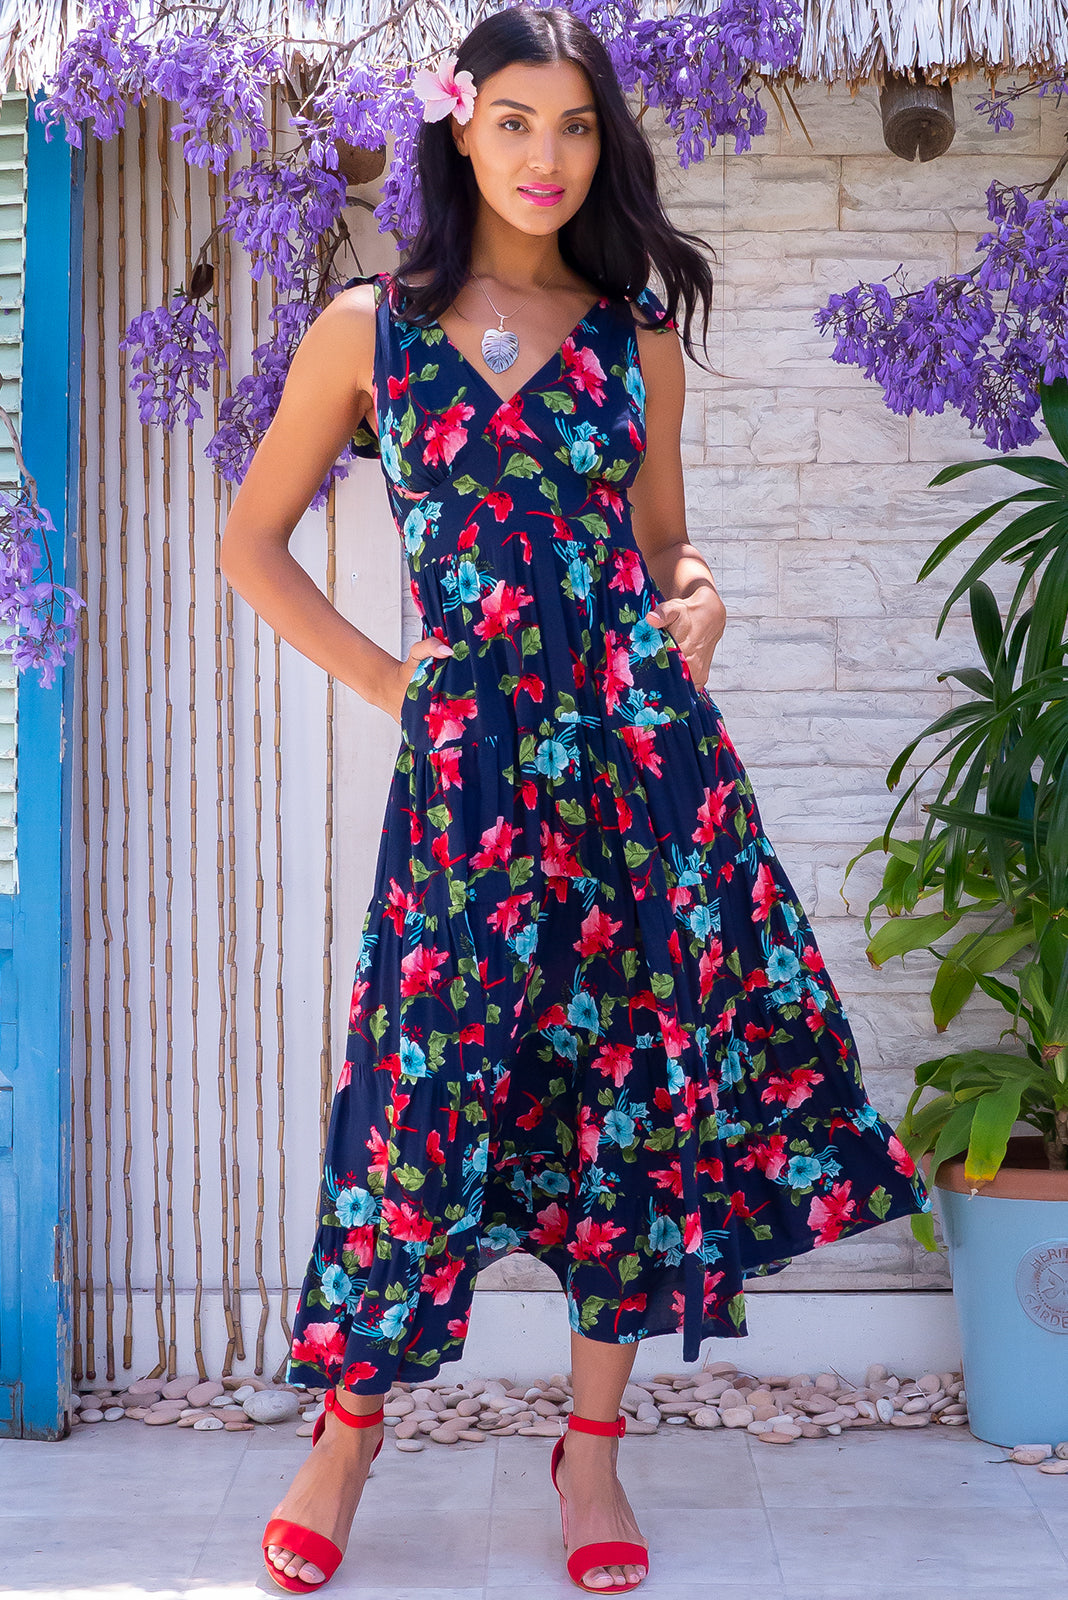 The Isla Tropic Hibiscus Maxi Dress is a tiered, full maxi skirt dress featuring adjustable shoulder ties, shirred elasticated back waist, side pockets and 100% viscose in ink base with vibrant tropical print.